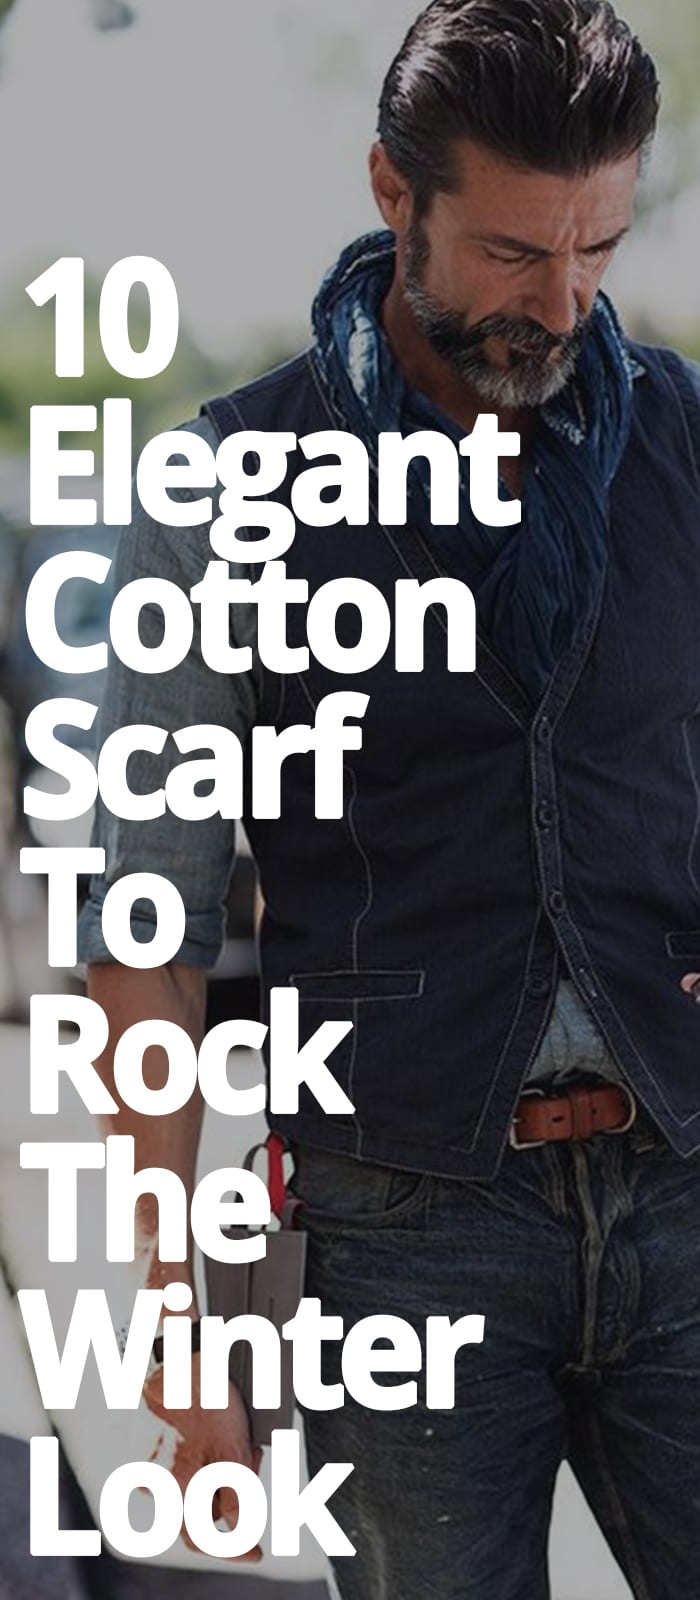 ELEGANT COTTON SCARF TO ROCK THE WINTER